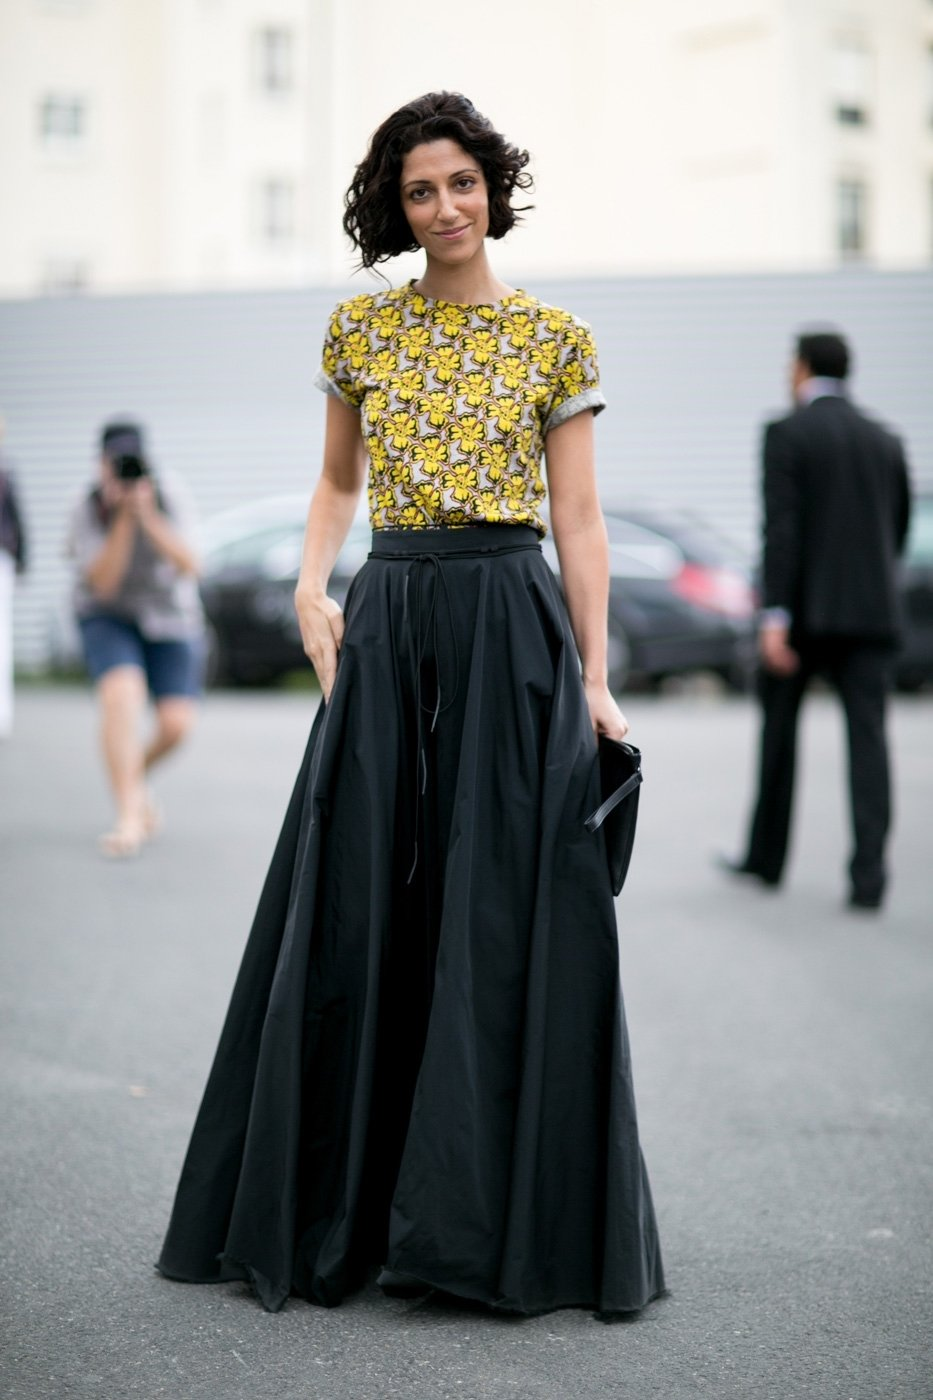 10 Awesome Long Black Skirt Outfit Ideas long black maxi skirt outfit ideas ideas what to wear with a maxi 2020